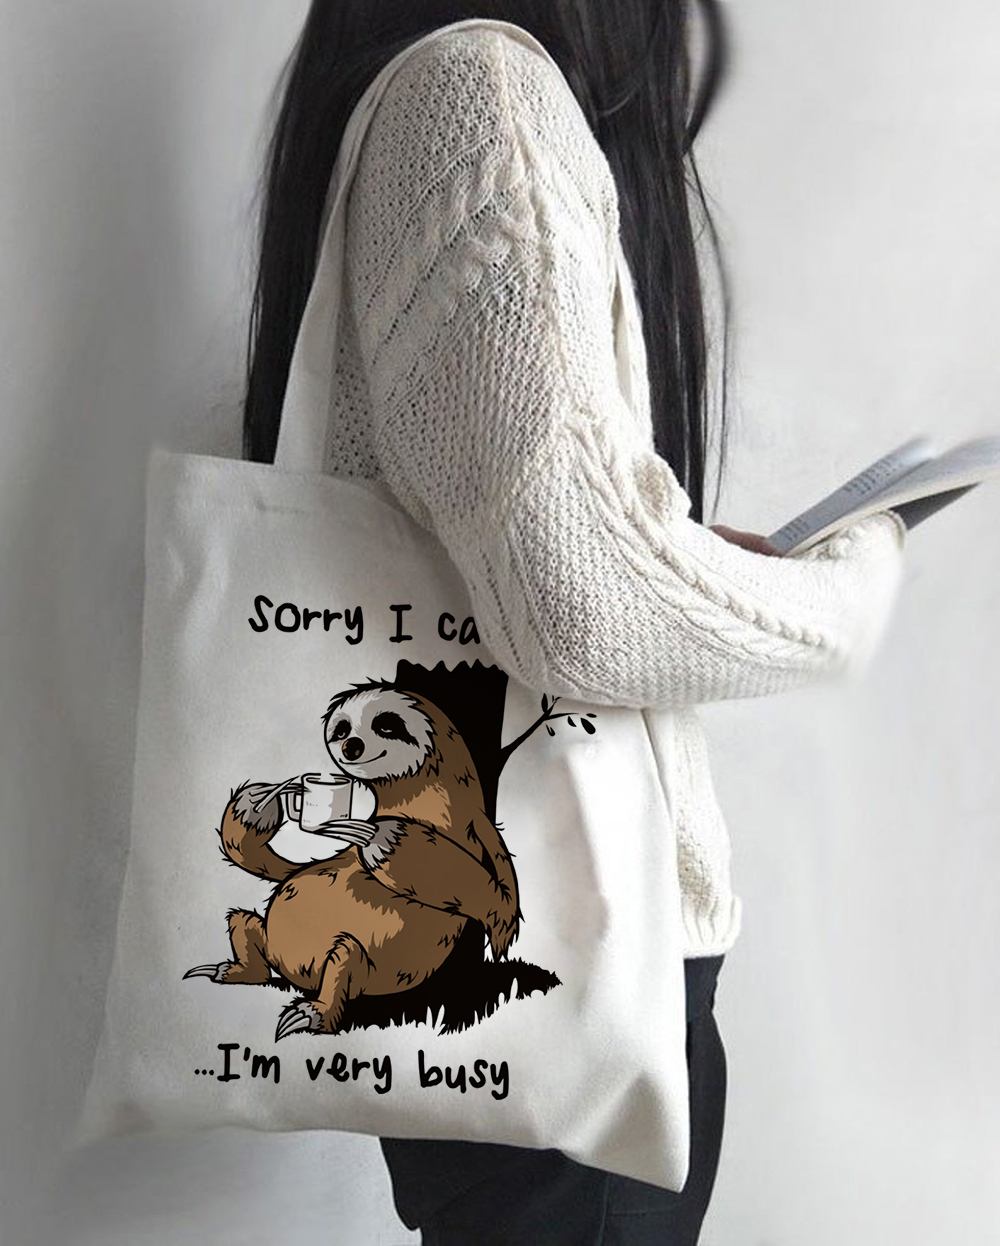 Women Cartoon Sloth Print Shopping Bag Tote Eco Handbag Tumblr Graphic Students College Style Simple Casual Shoulder Bags